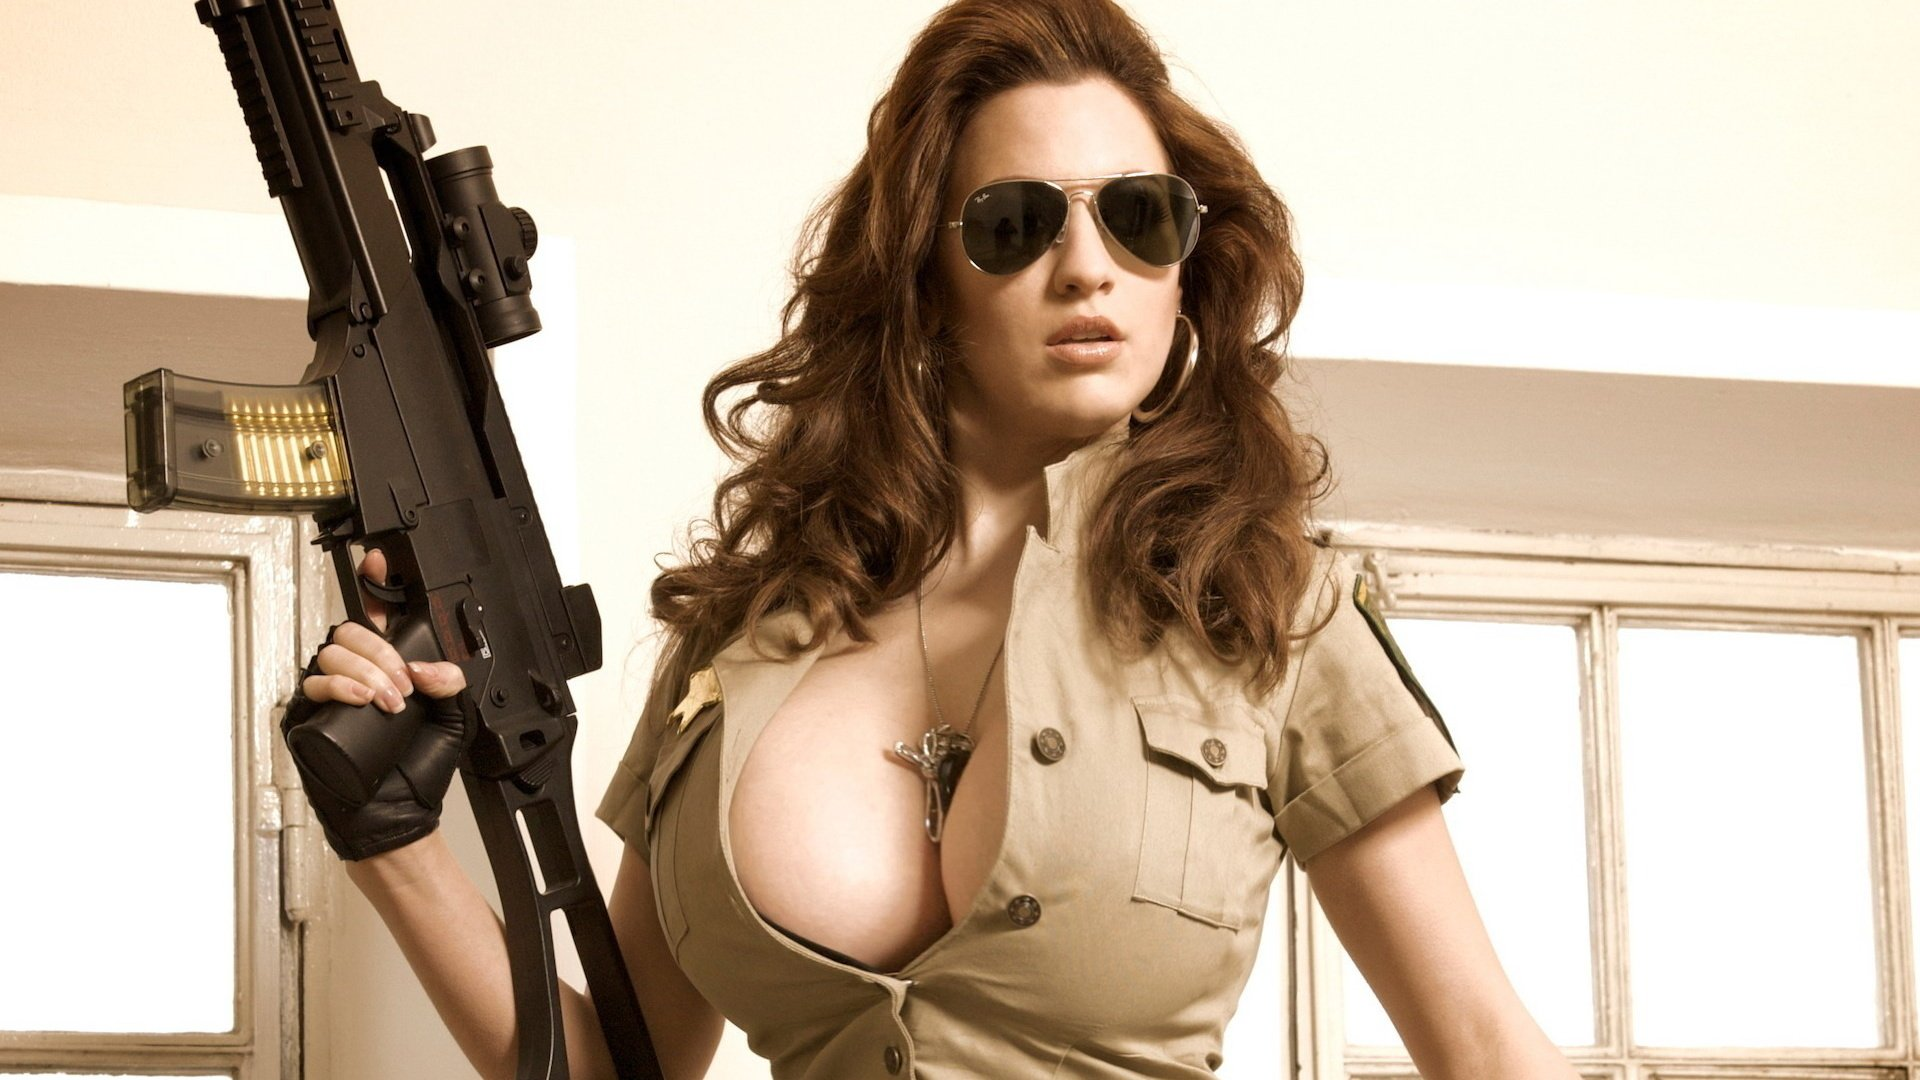 Naked girls with guns pictures sexual image